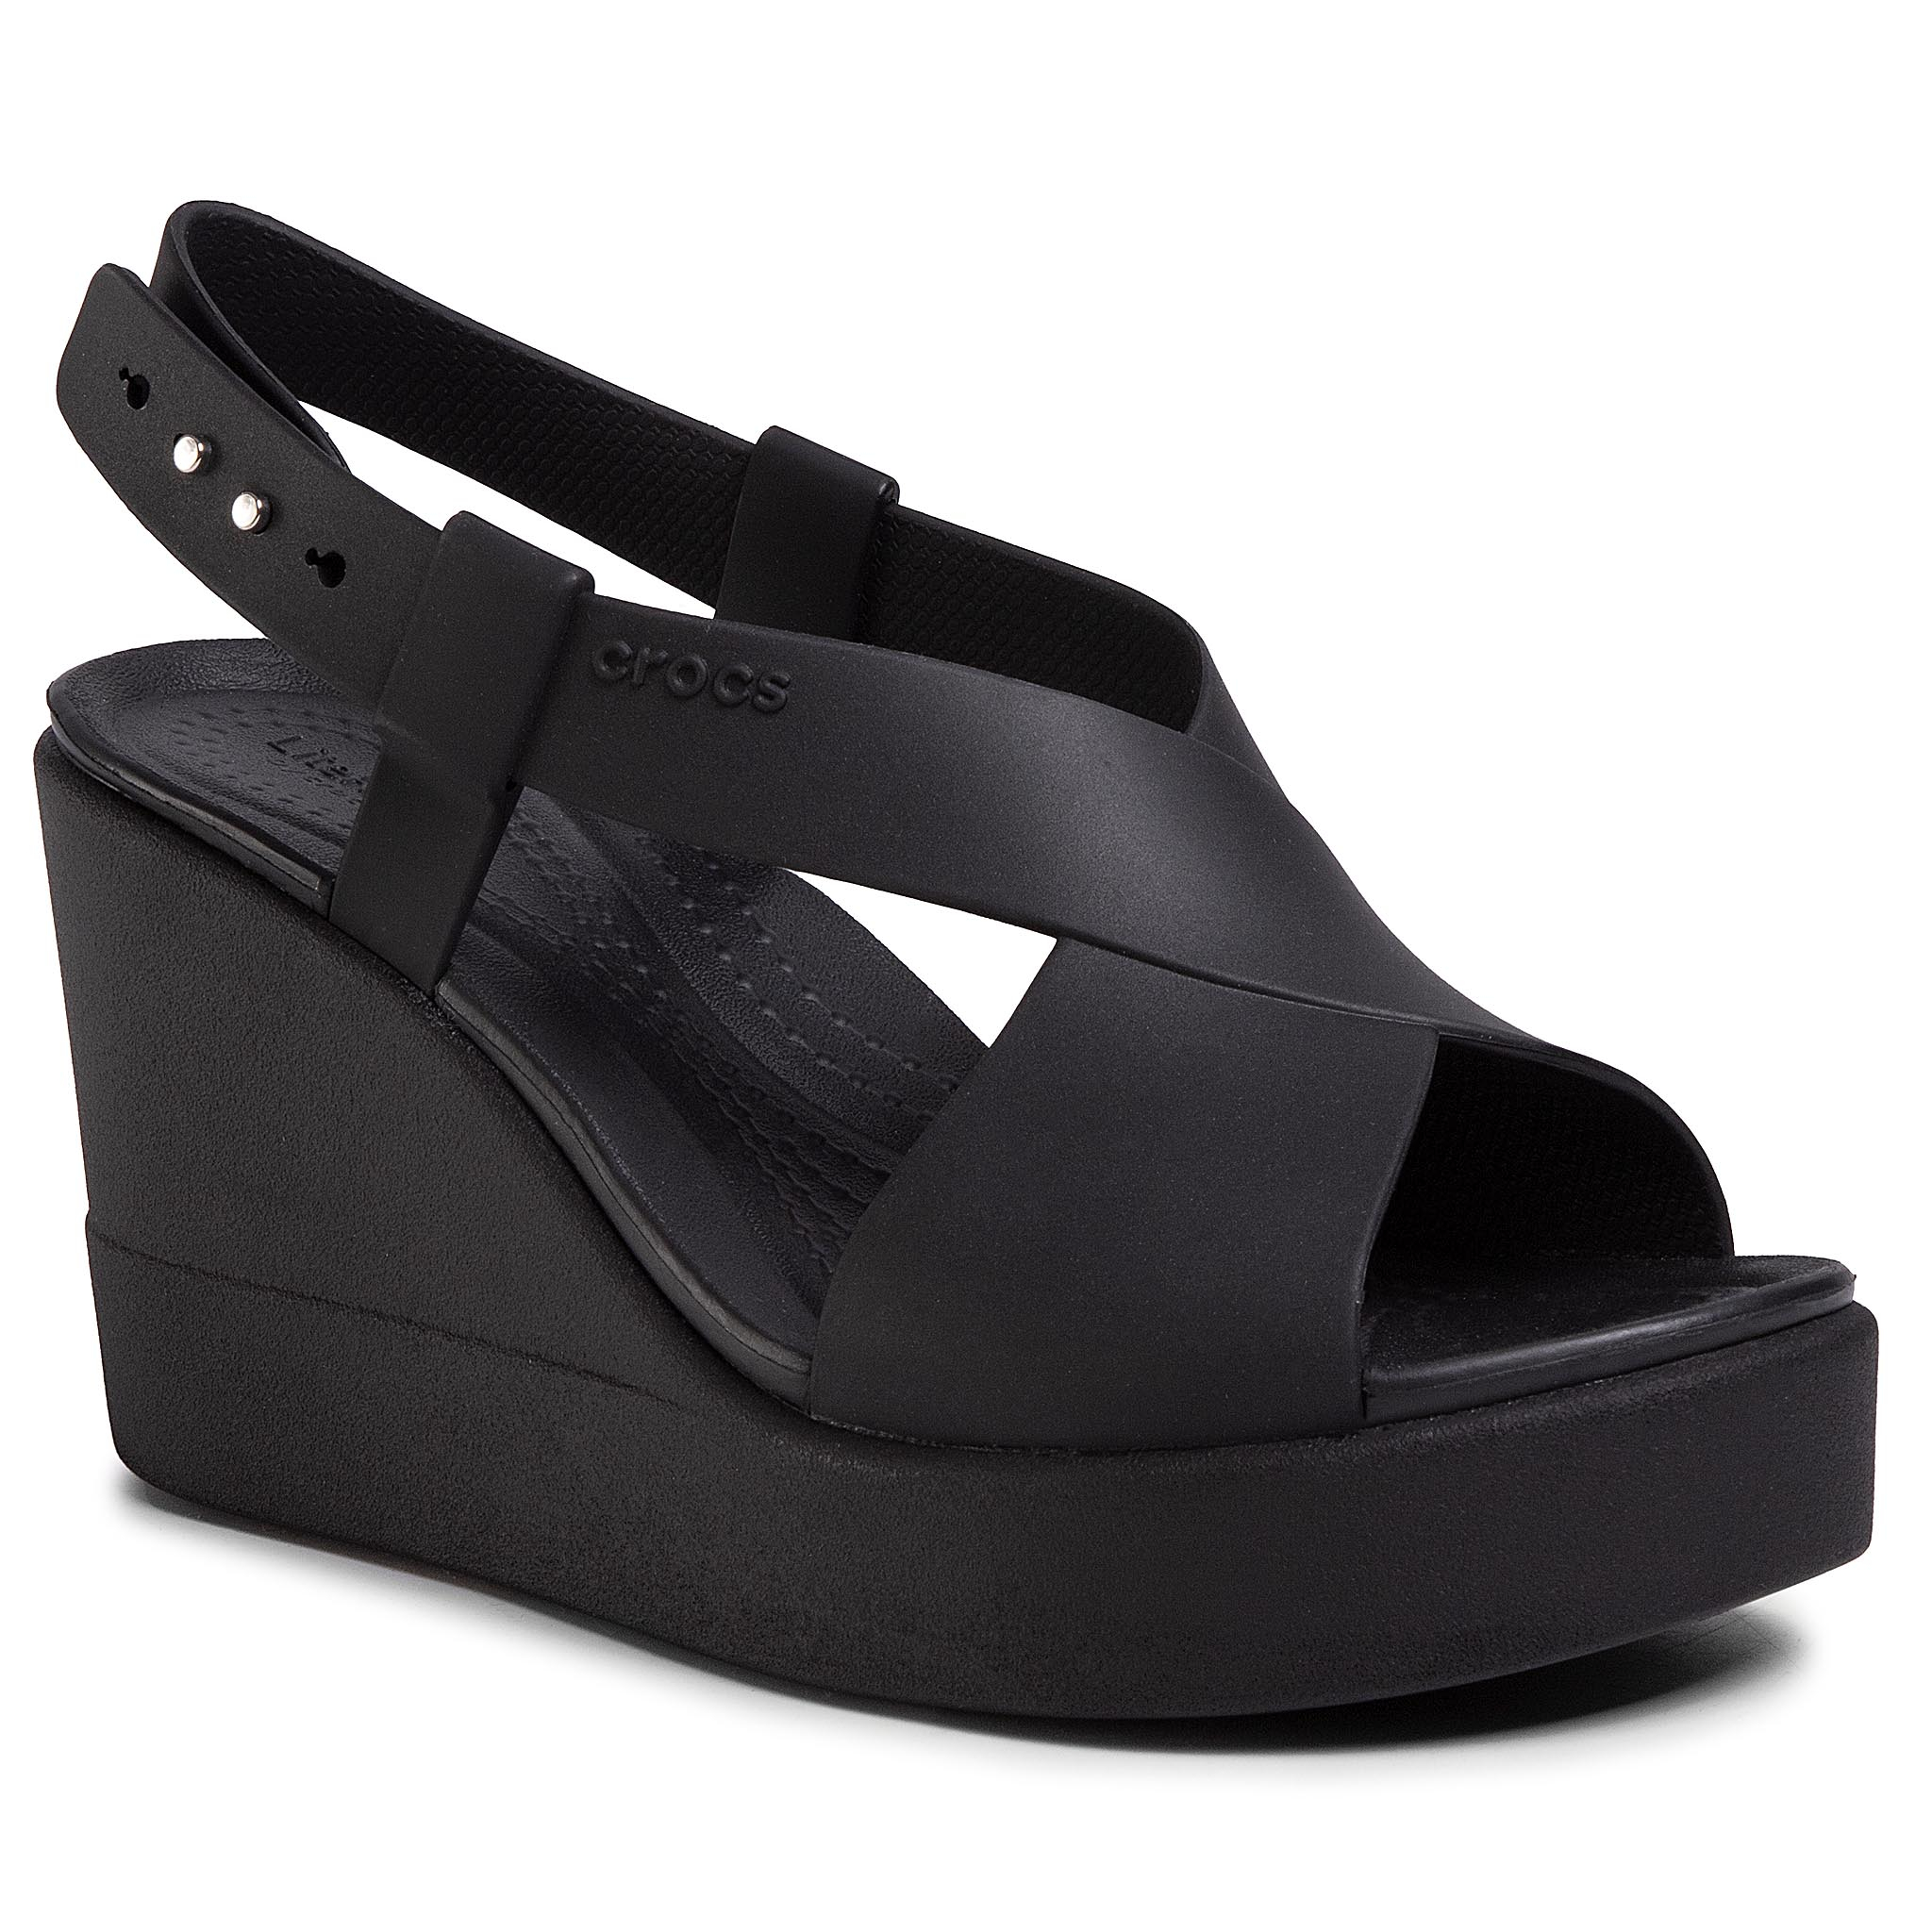 Sandały CROCS - Brooklyn High Wedge W 206222  Black/Black